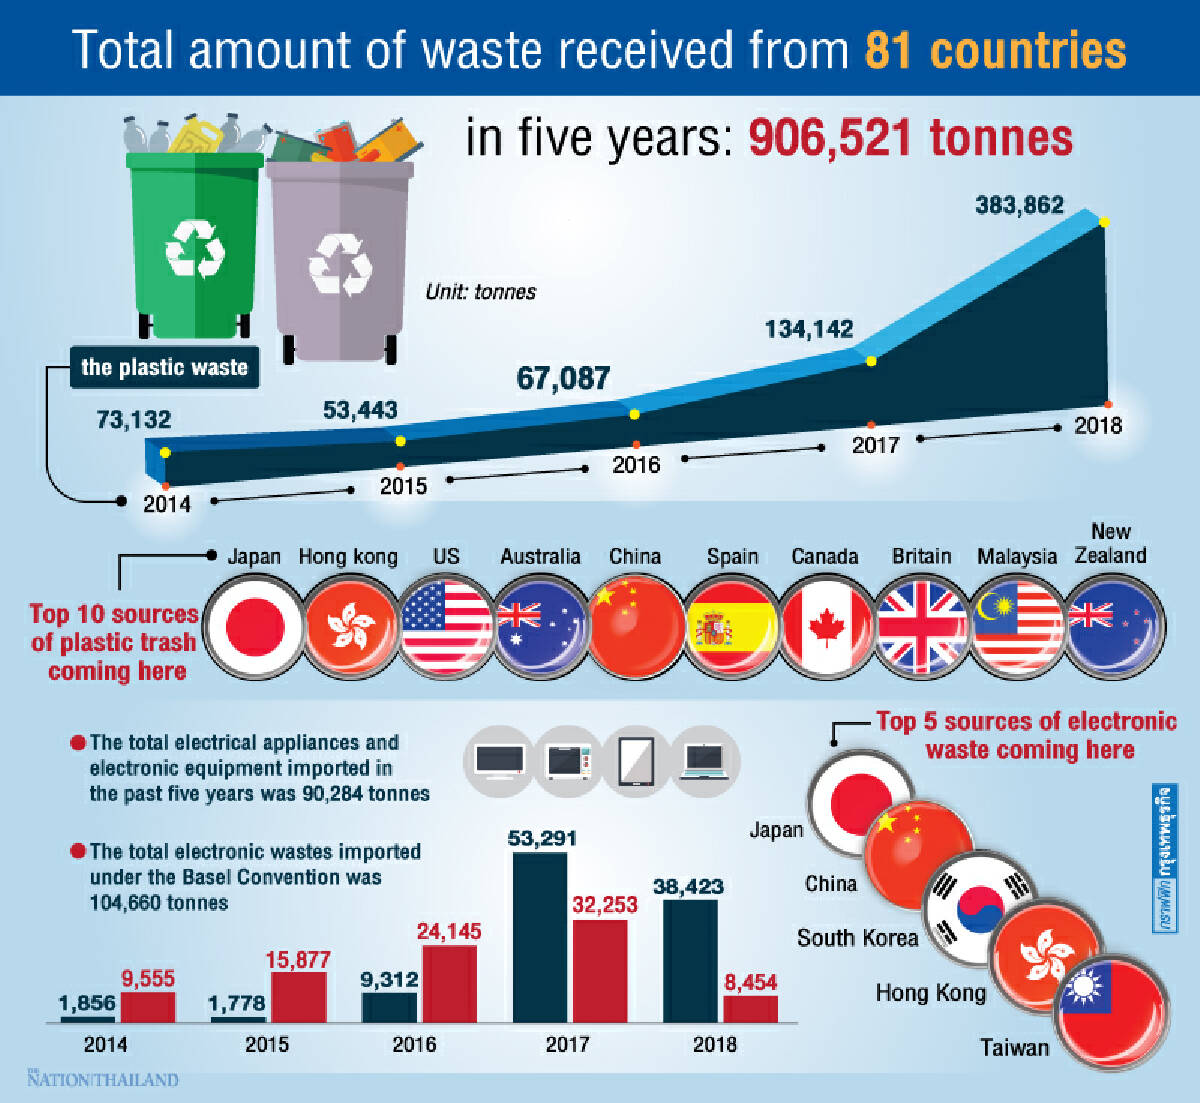 Thailand taking on far more of world's garbage